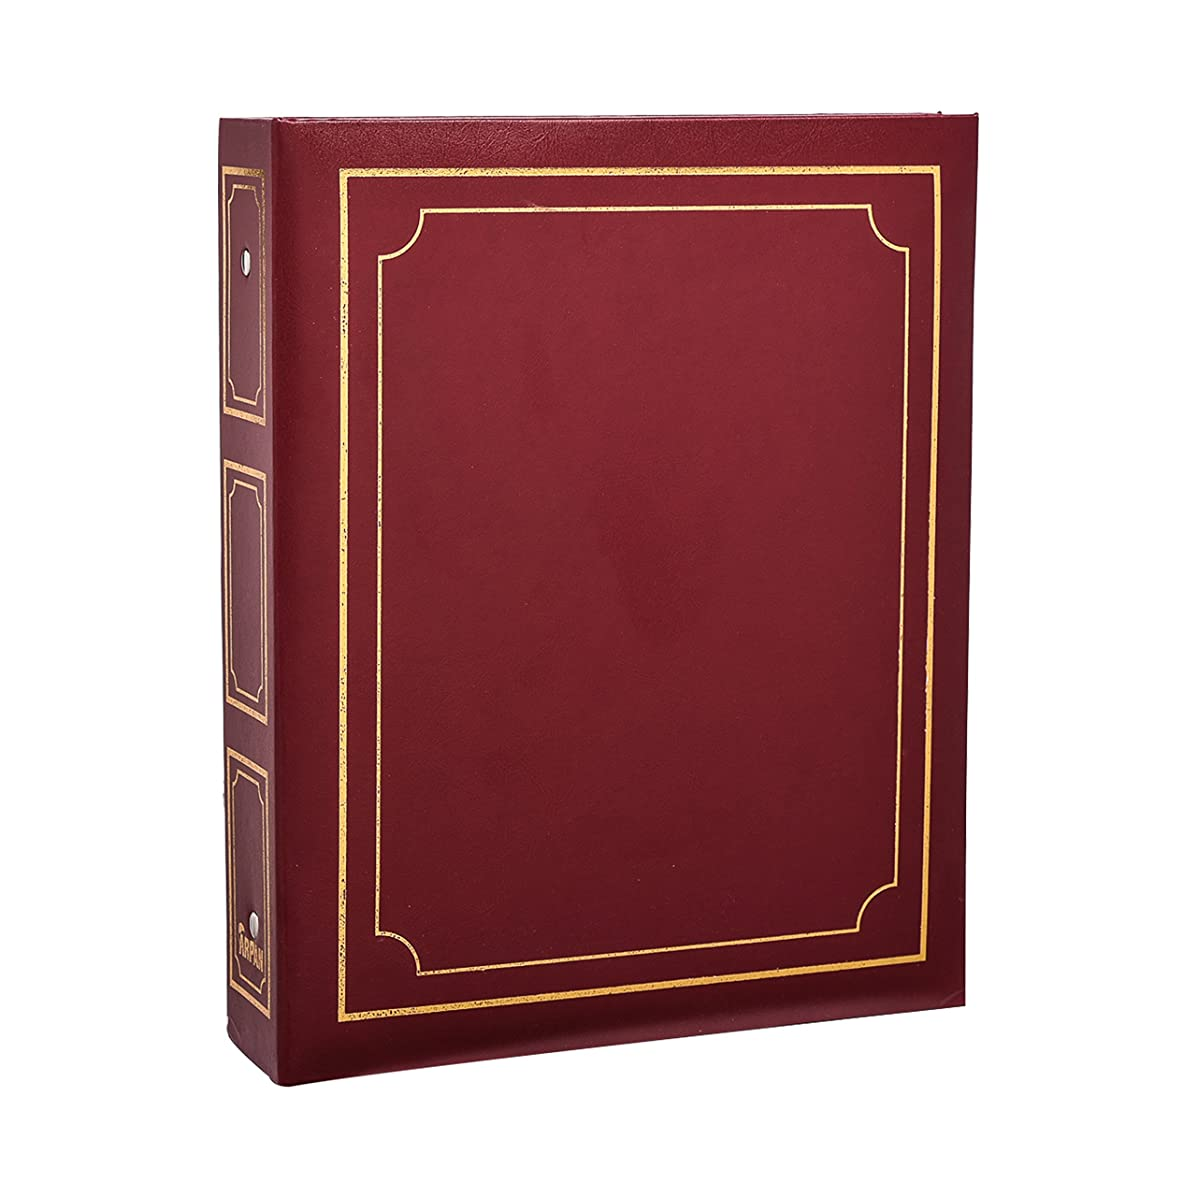 Arpan Deluxe Large Self Adhesive Ring Binder Magnetic Page Photo Album 40 Sheets/80 Sides (Red/Burgundy)